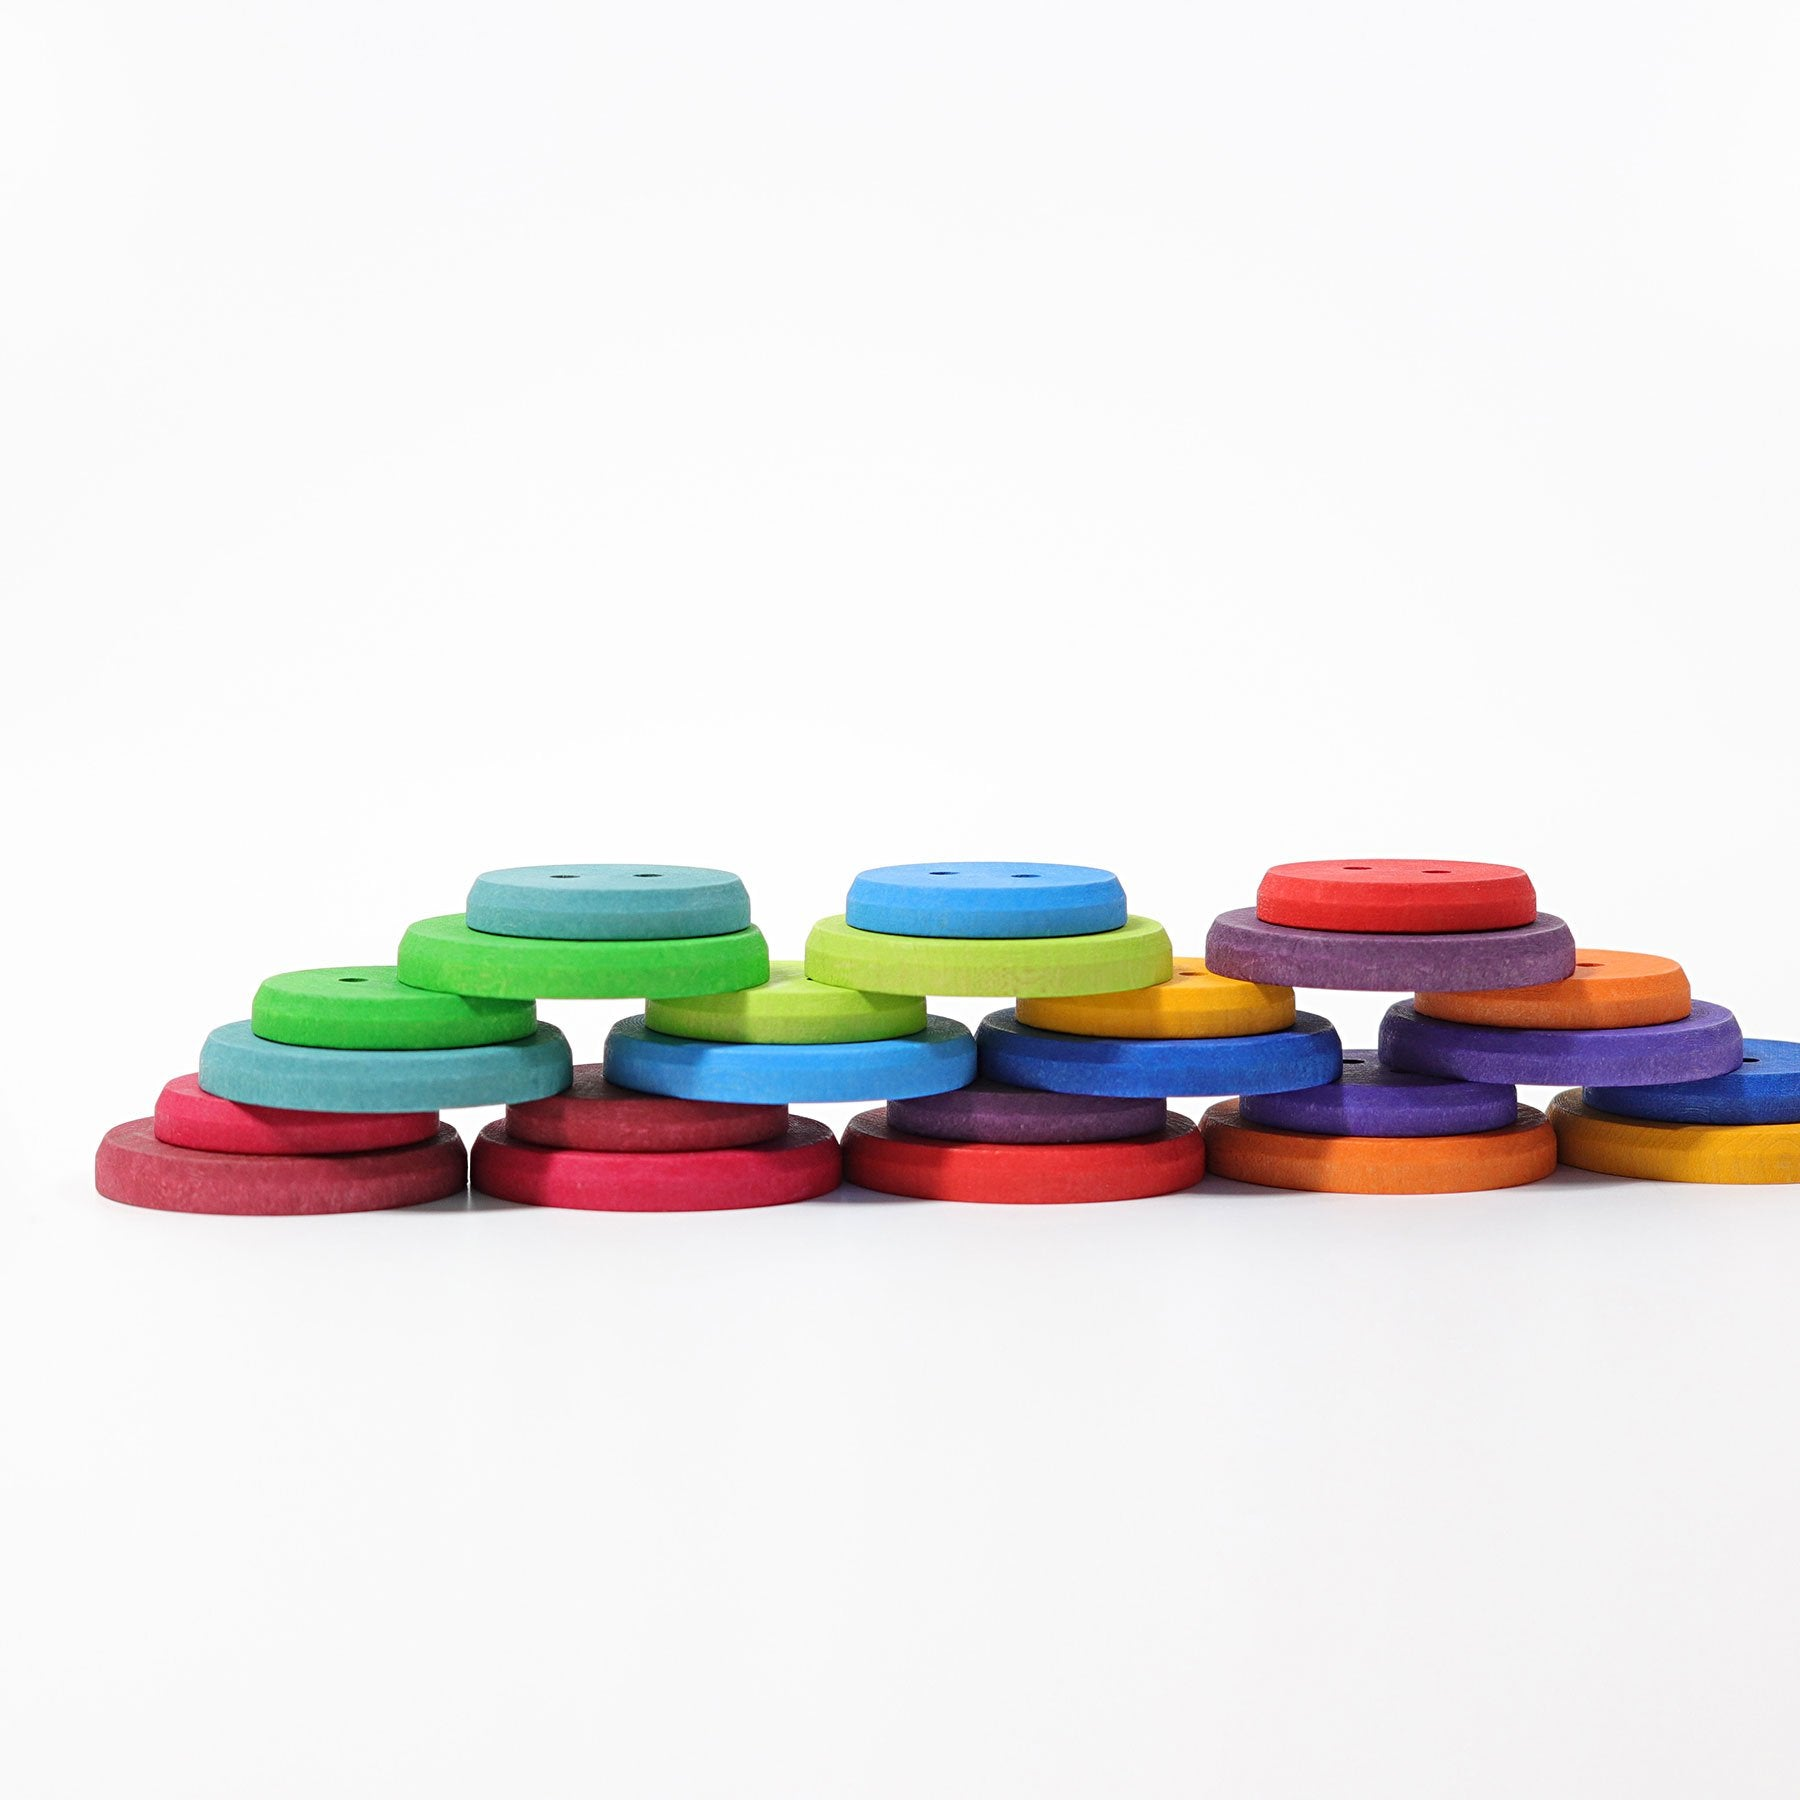 Grimm's Large Buttons for Threading – The Creative Toy Shop